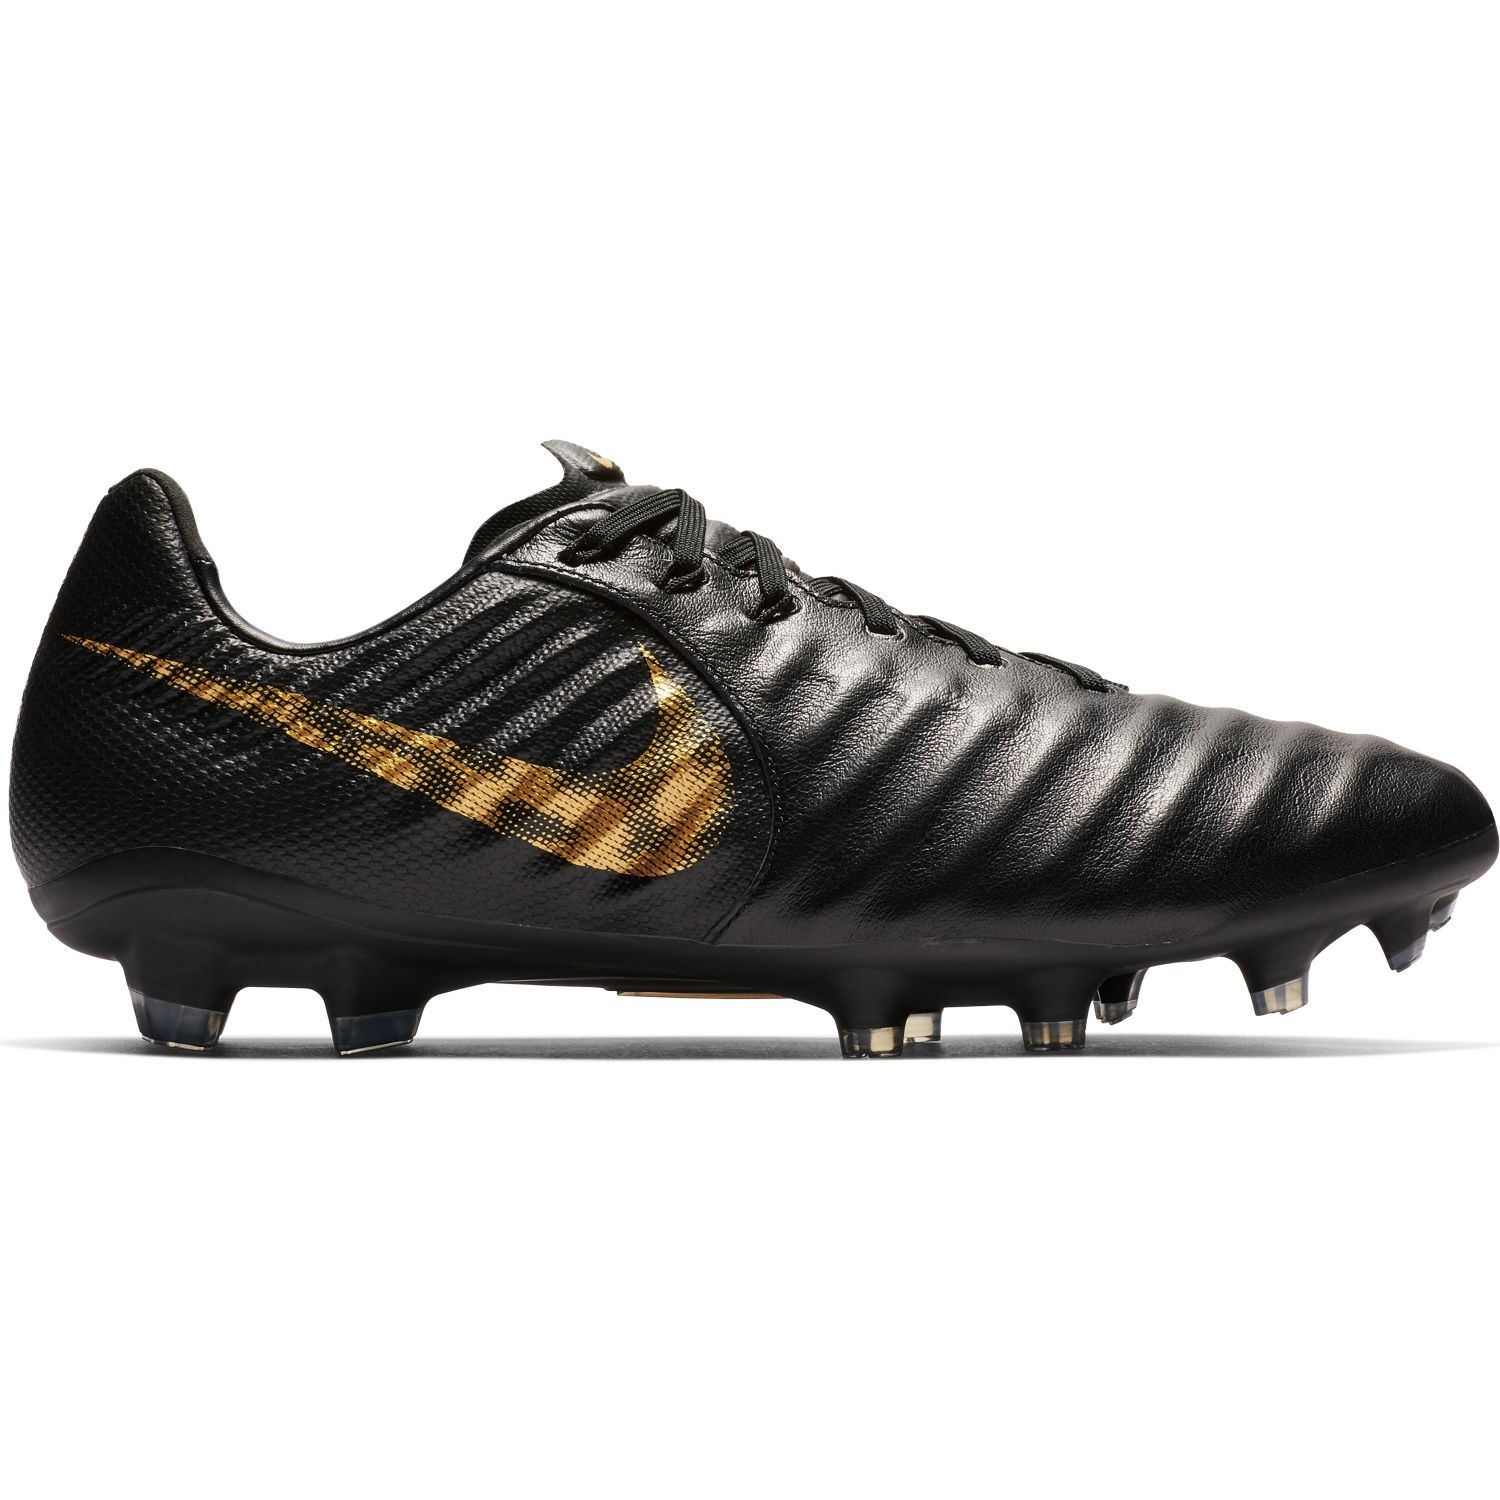 4e8757f19 Nike Tiempo Legend VII Pro FG - Mens Football Boots - Black Metallic Vivid  Gold